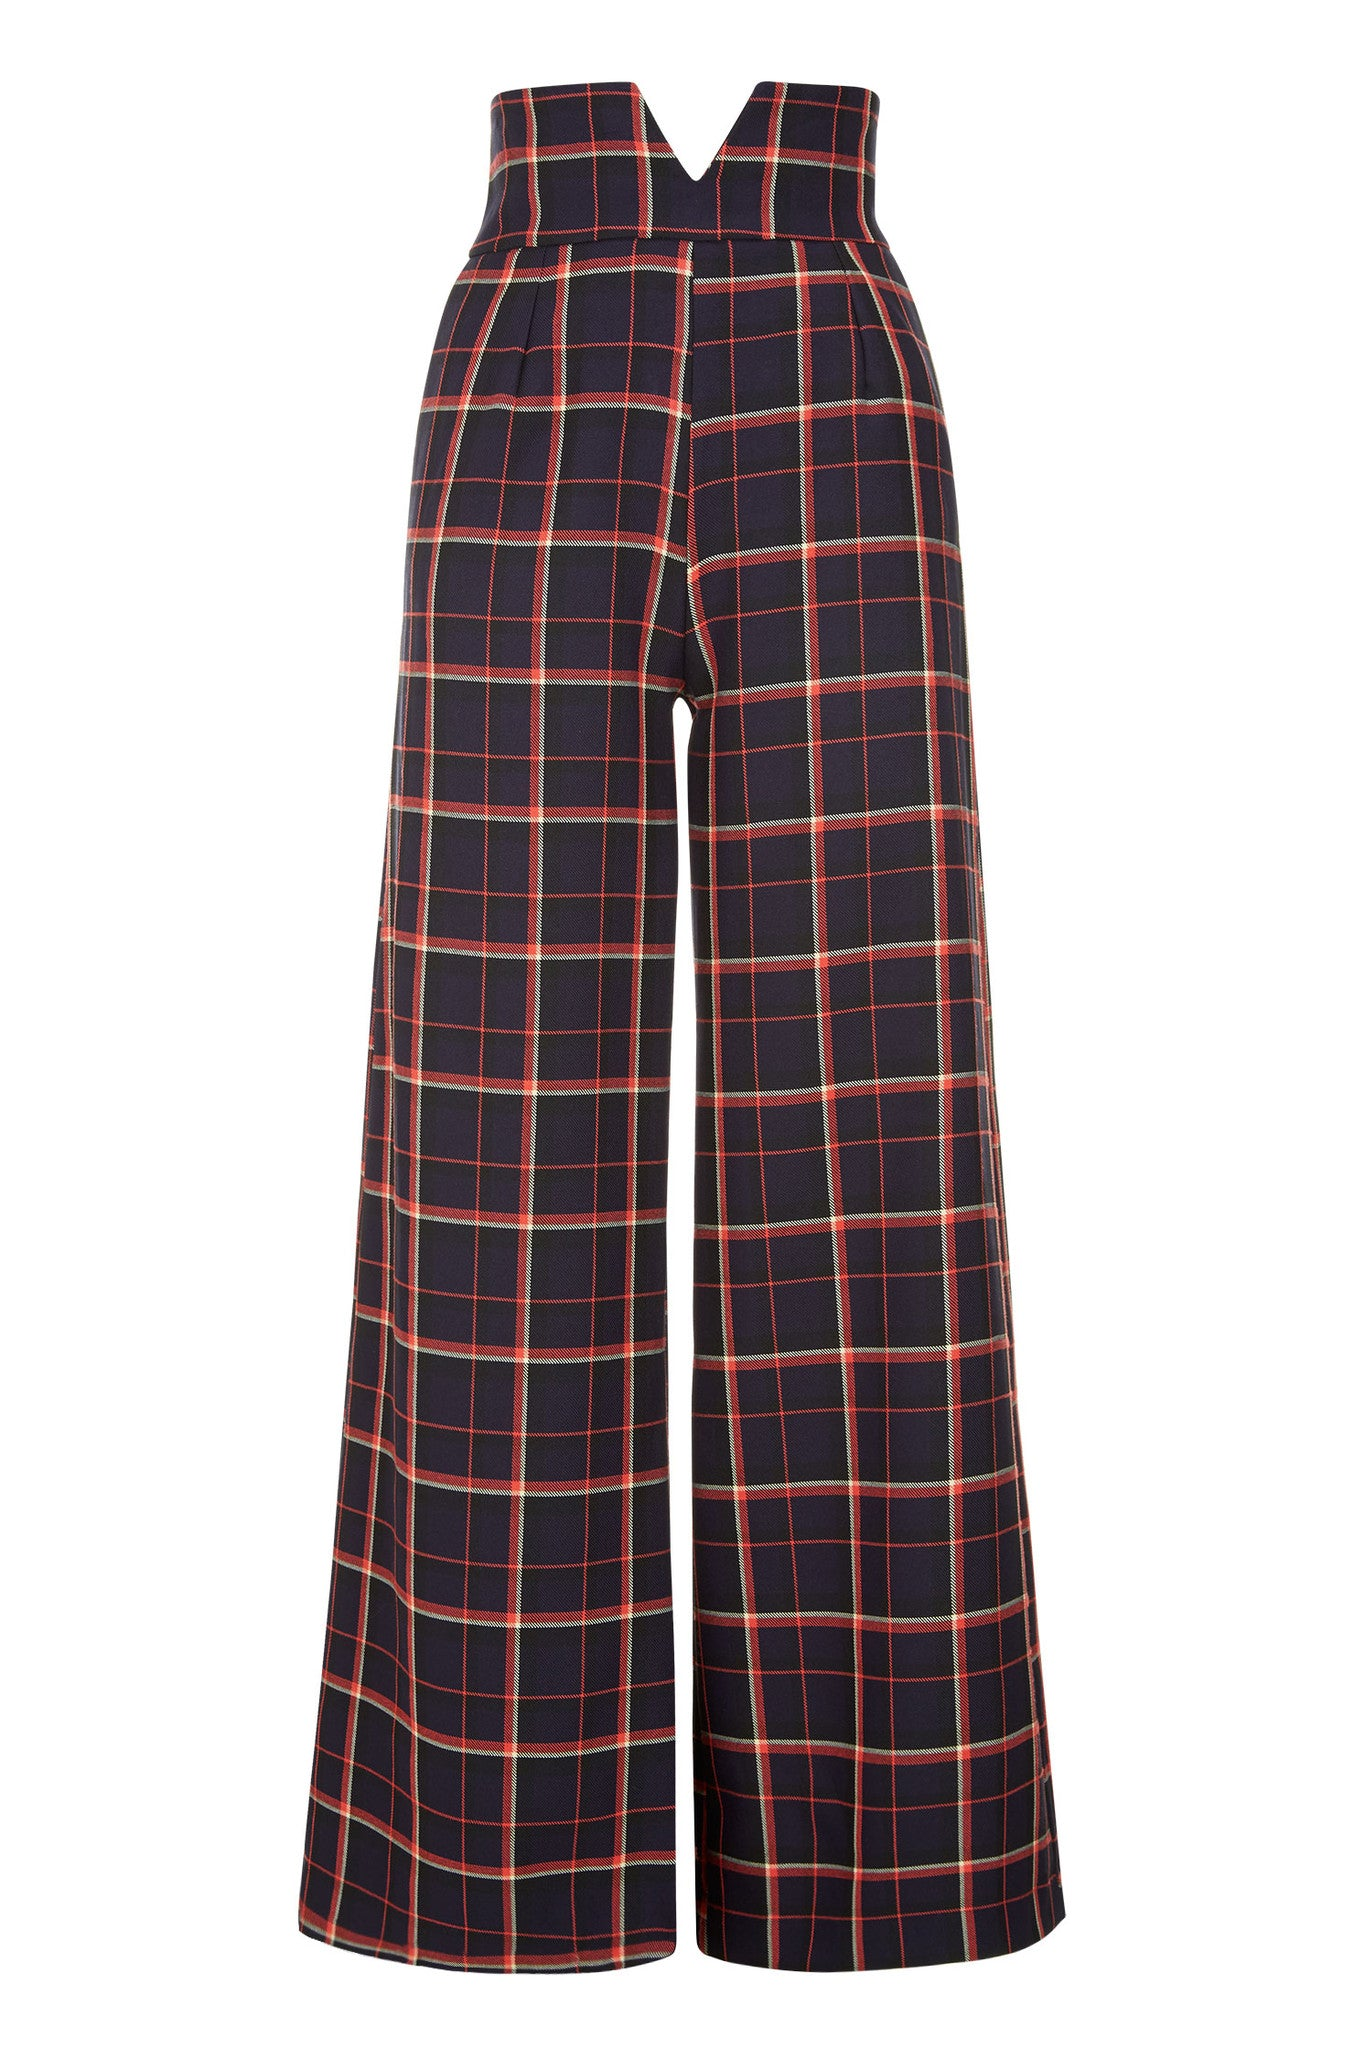 The Victory Trousers - Tartan